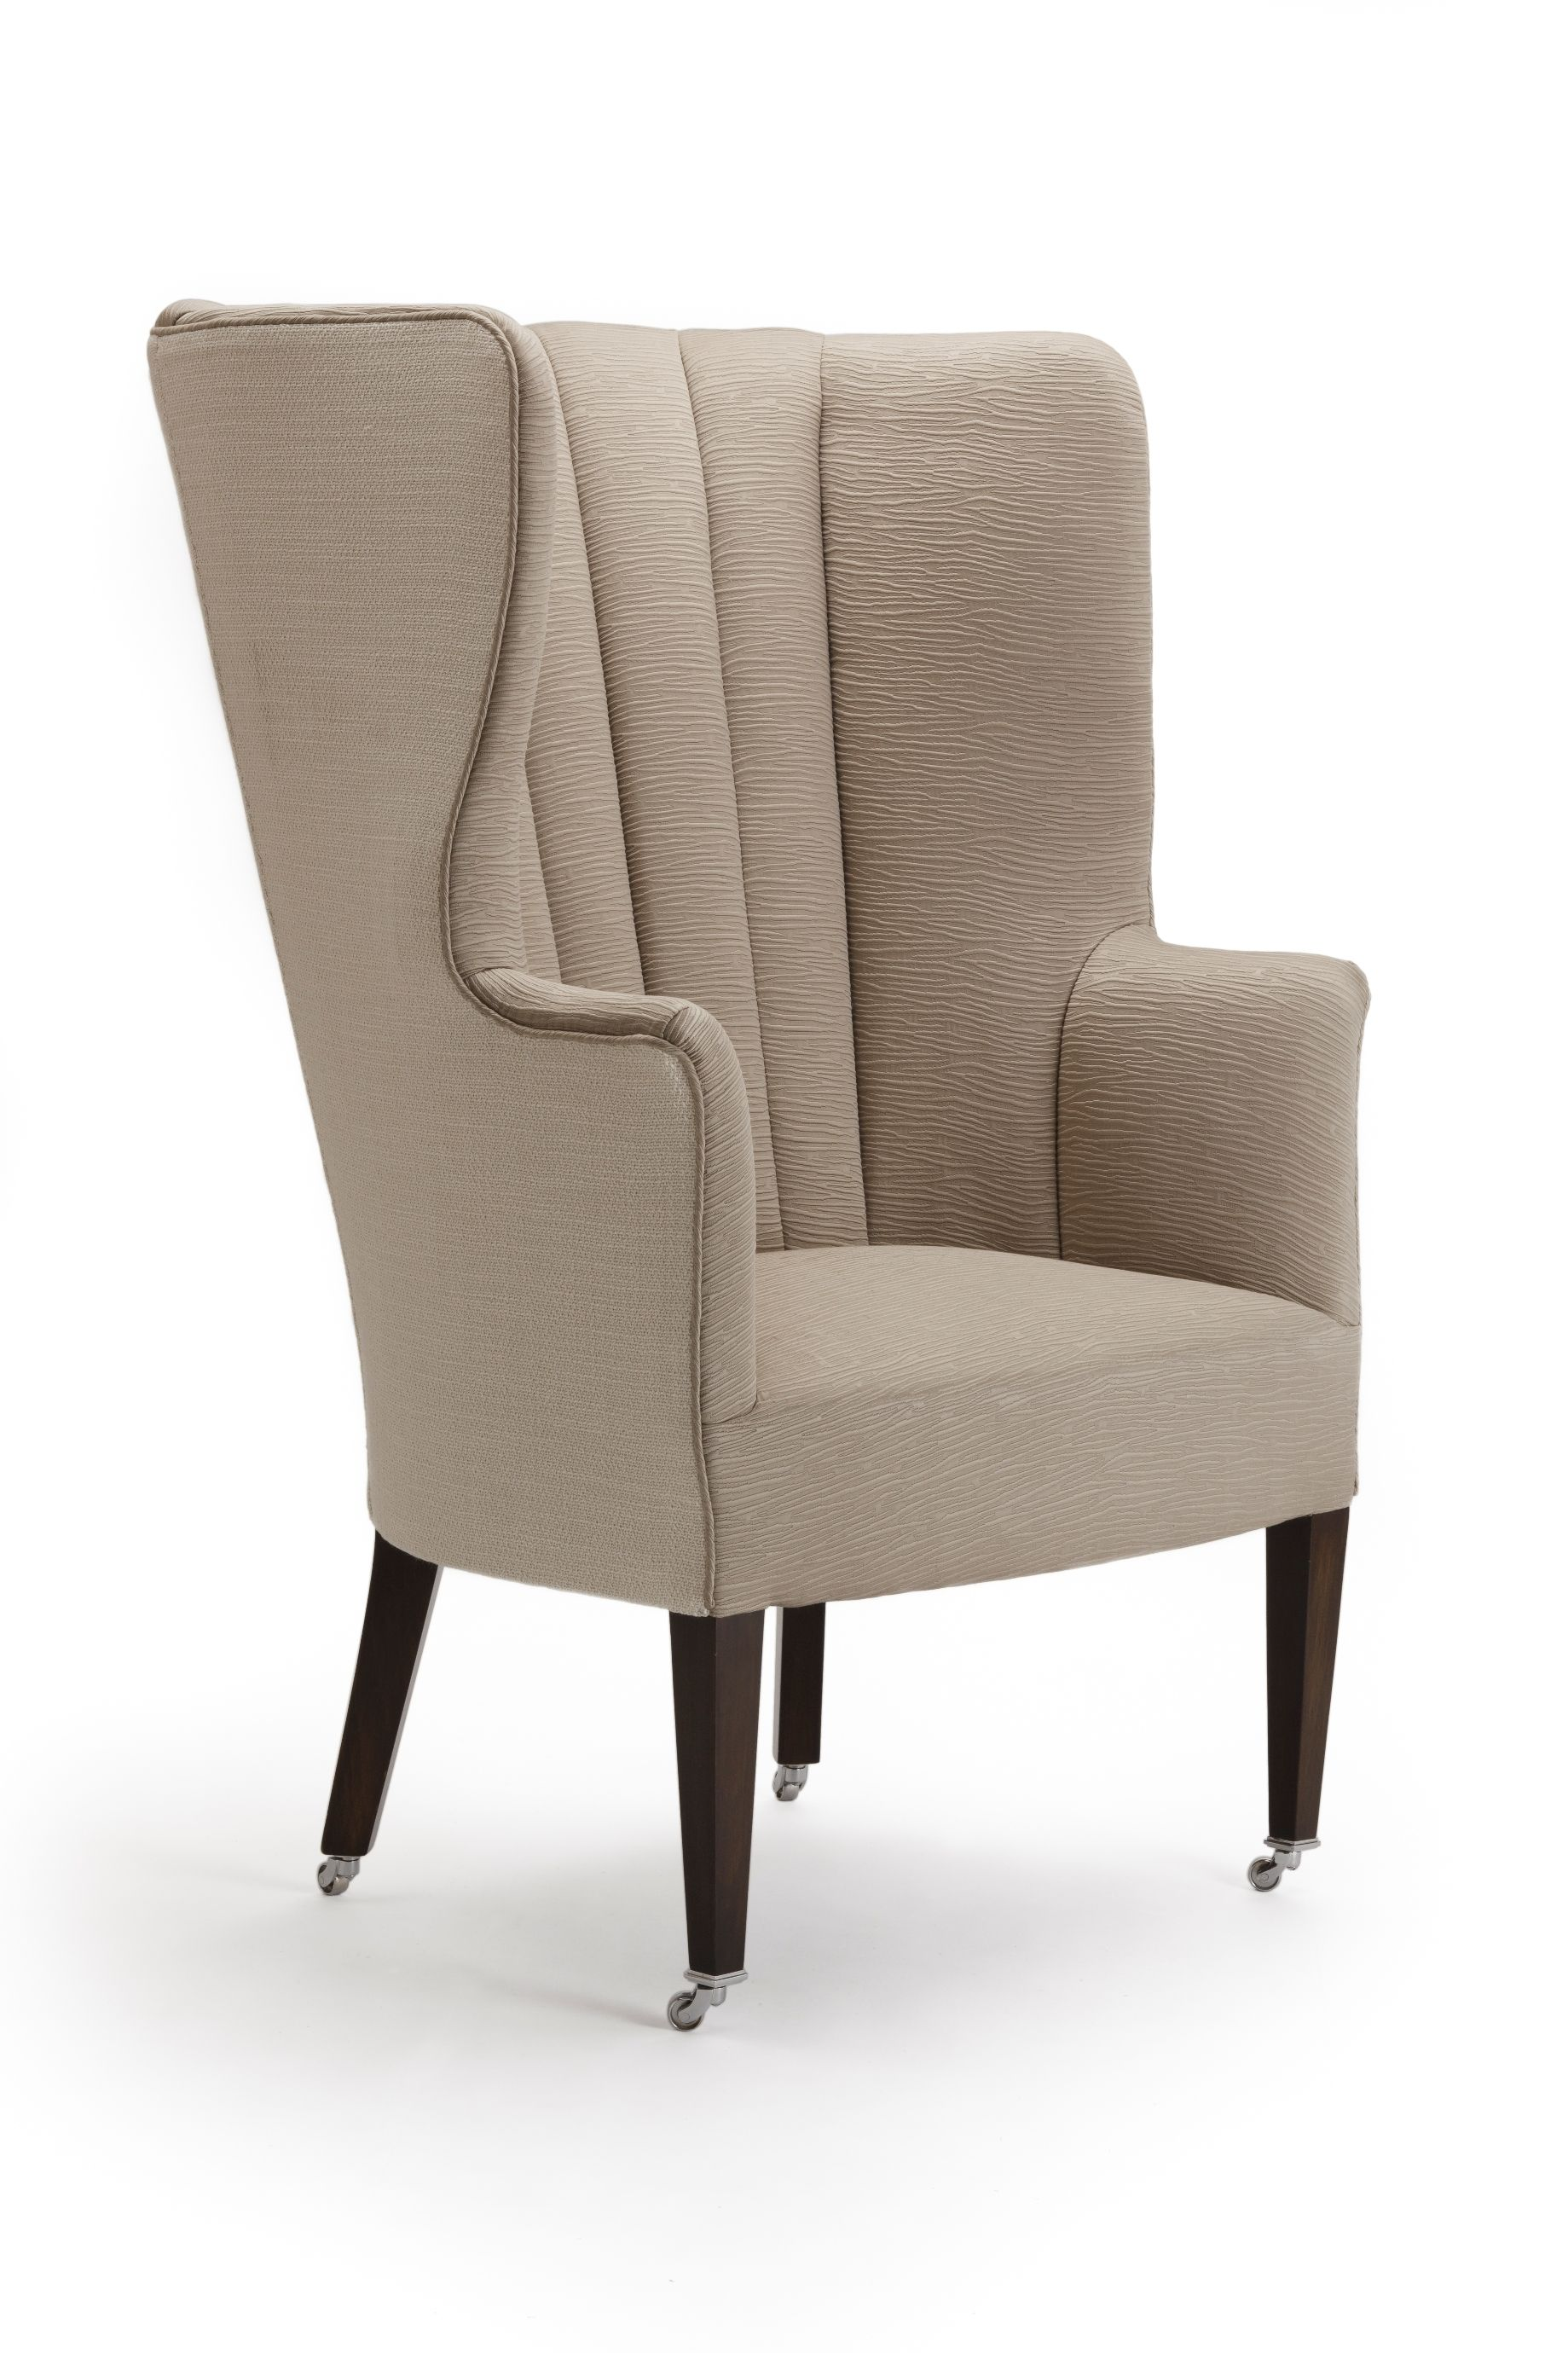 Awesome Benson Chair By The Odd Chair Company Our Wing Chairs Machost Co Dining Chair Design Ideas Machostcouk